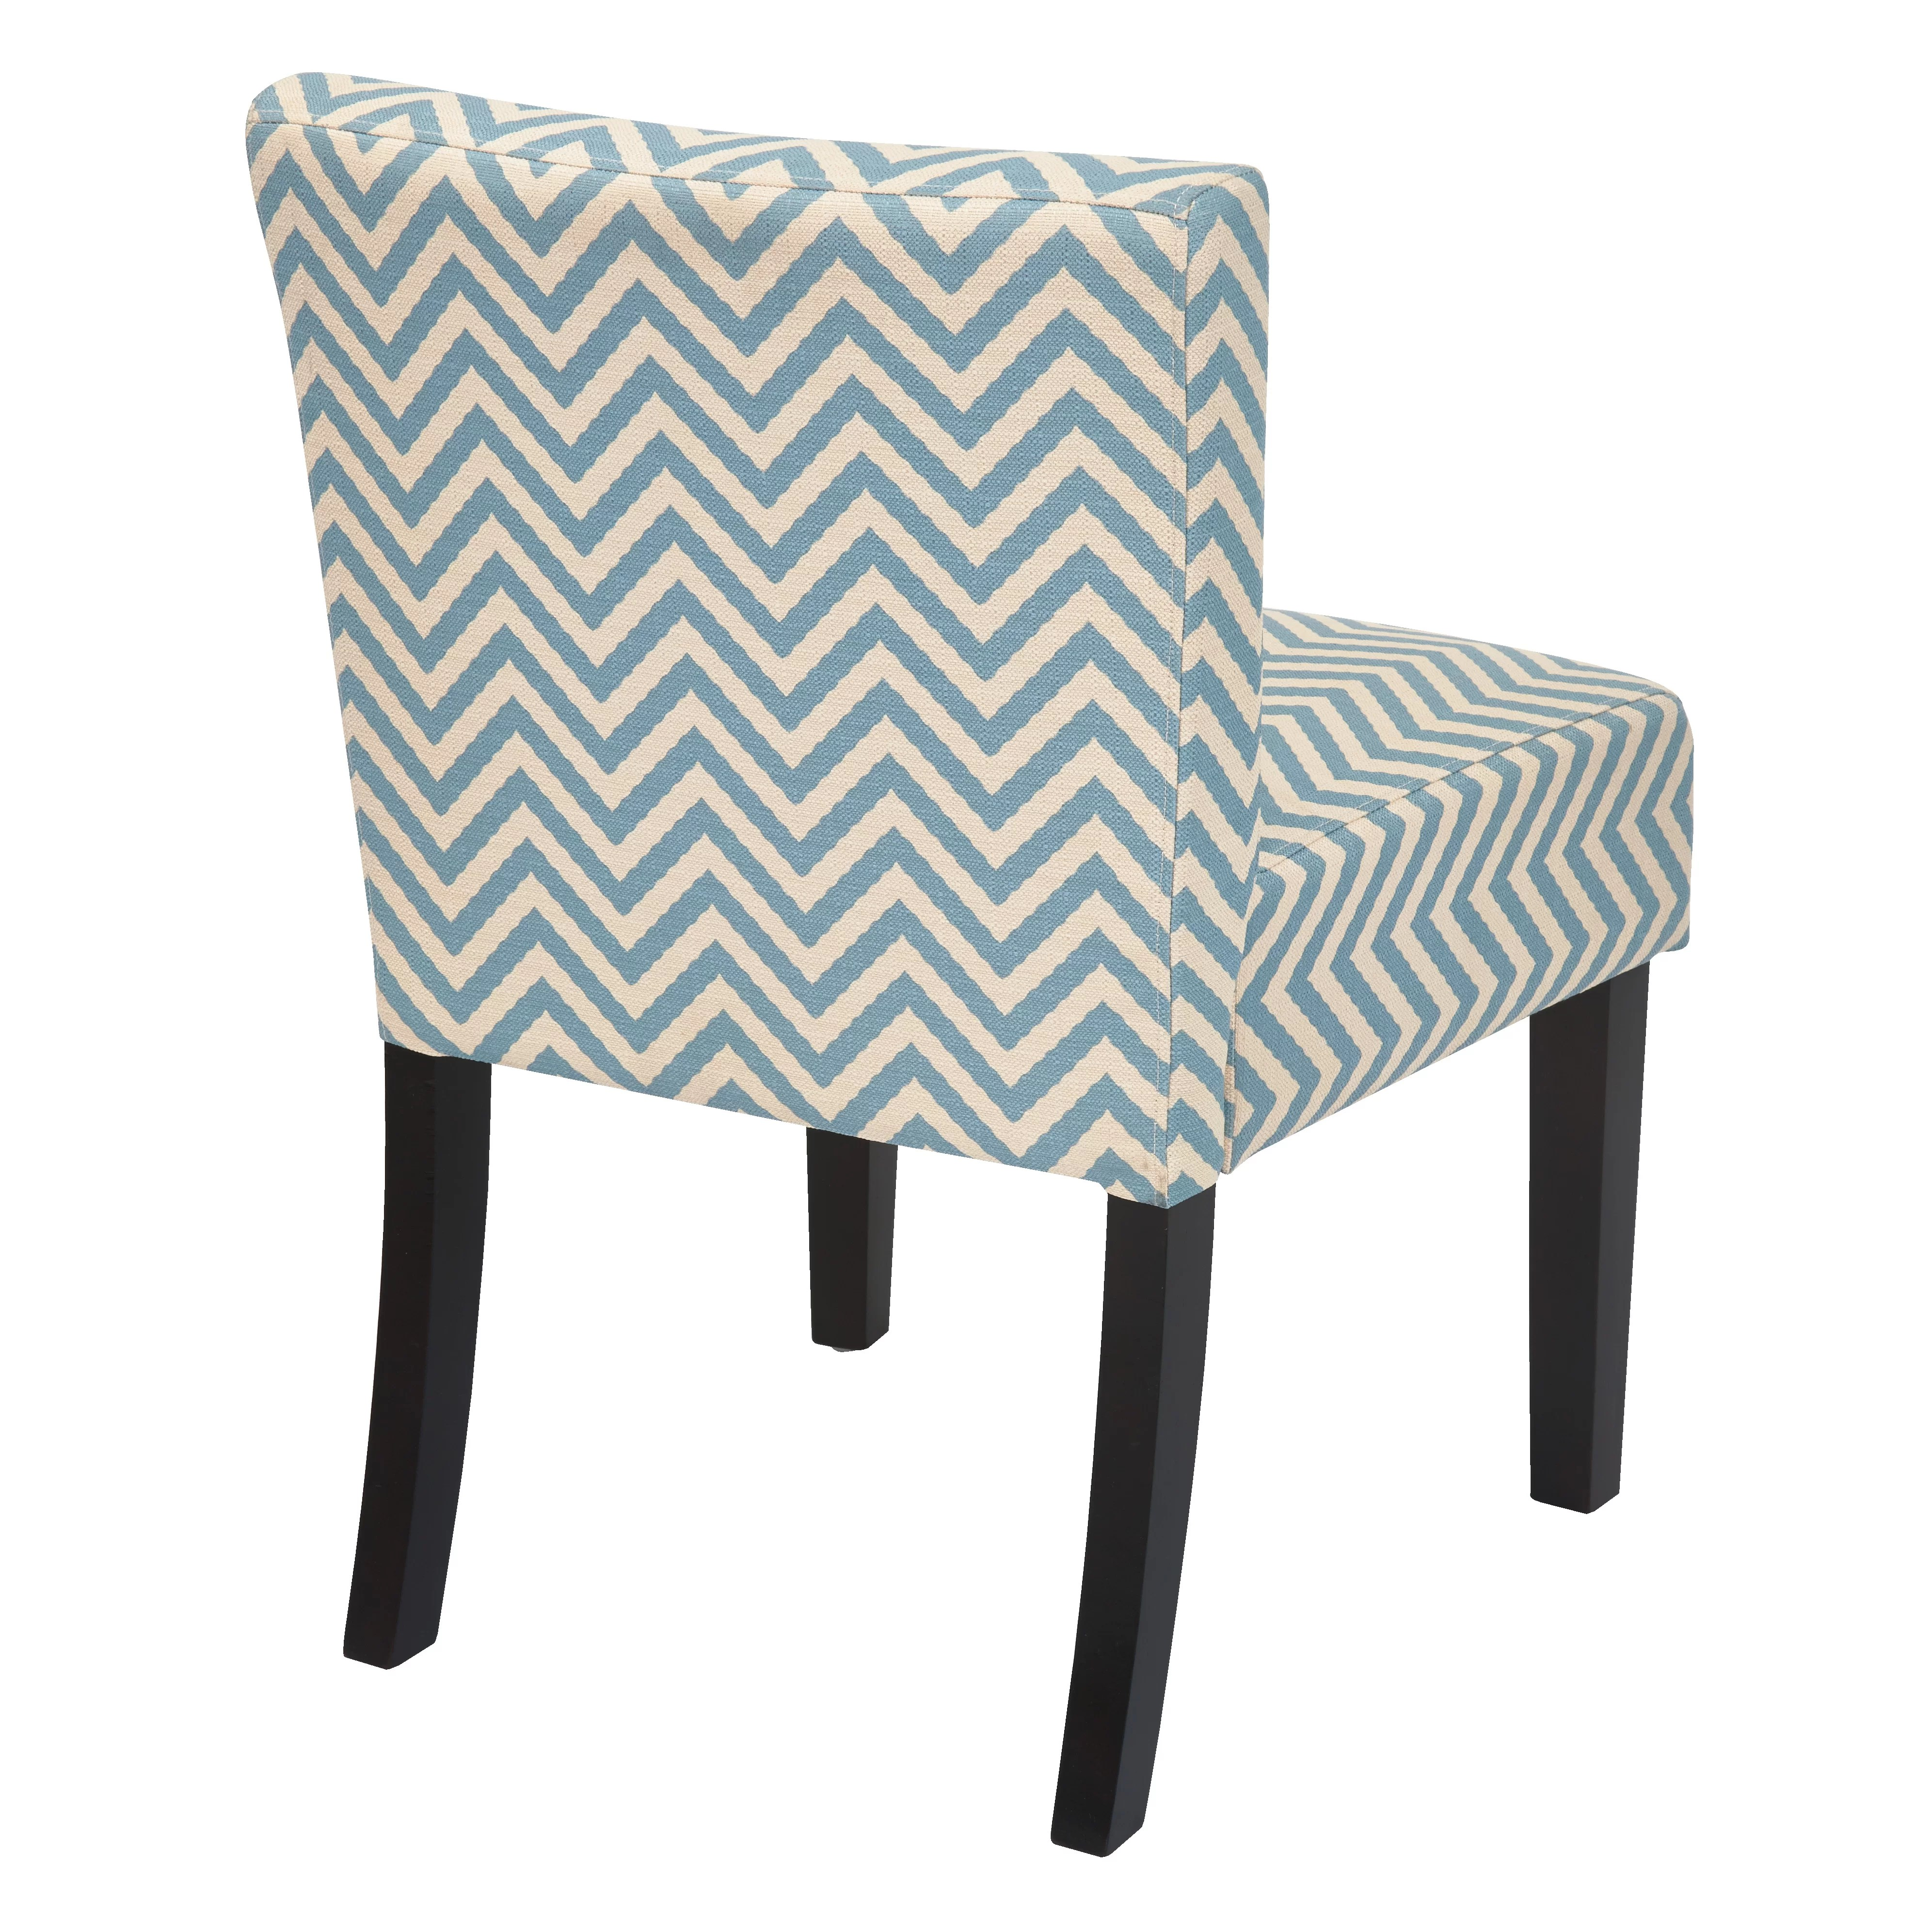 bassett ellis executive chair land of nod cover inspired by faux leather high back